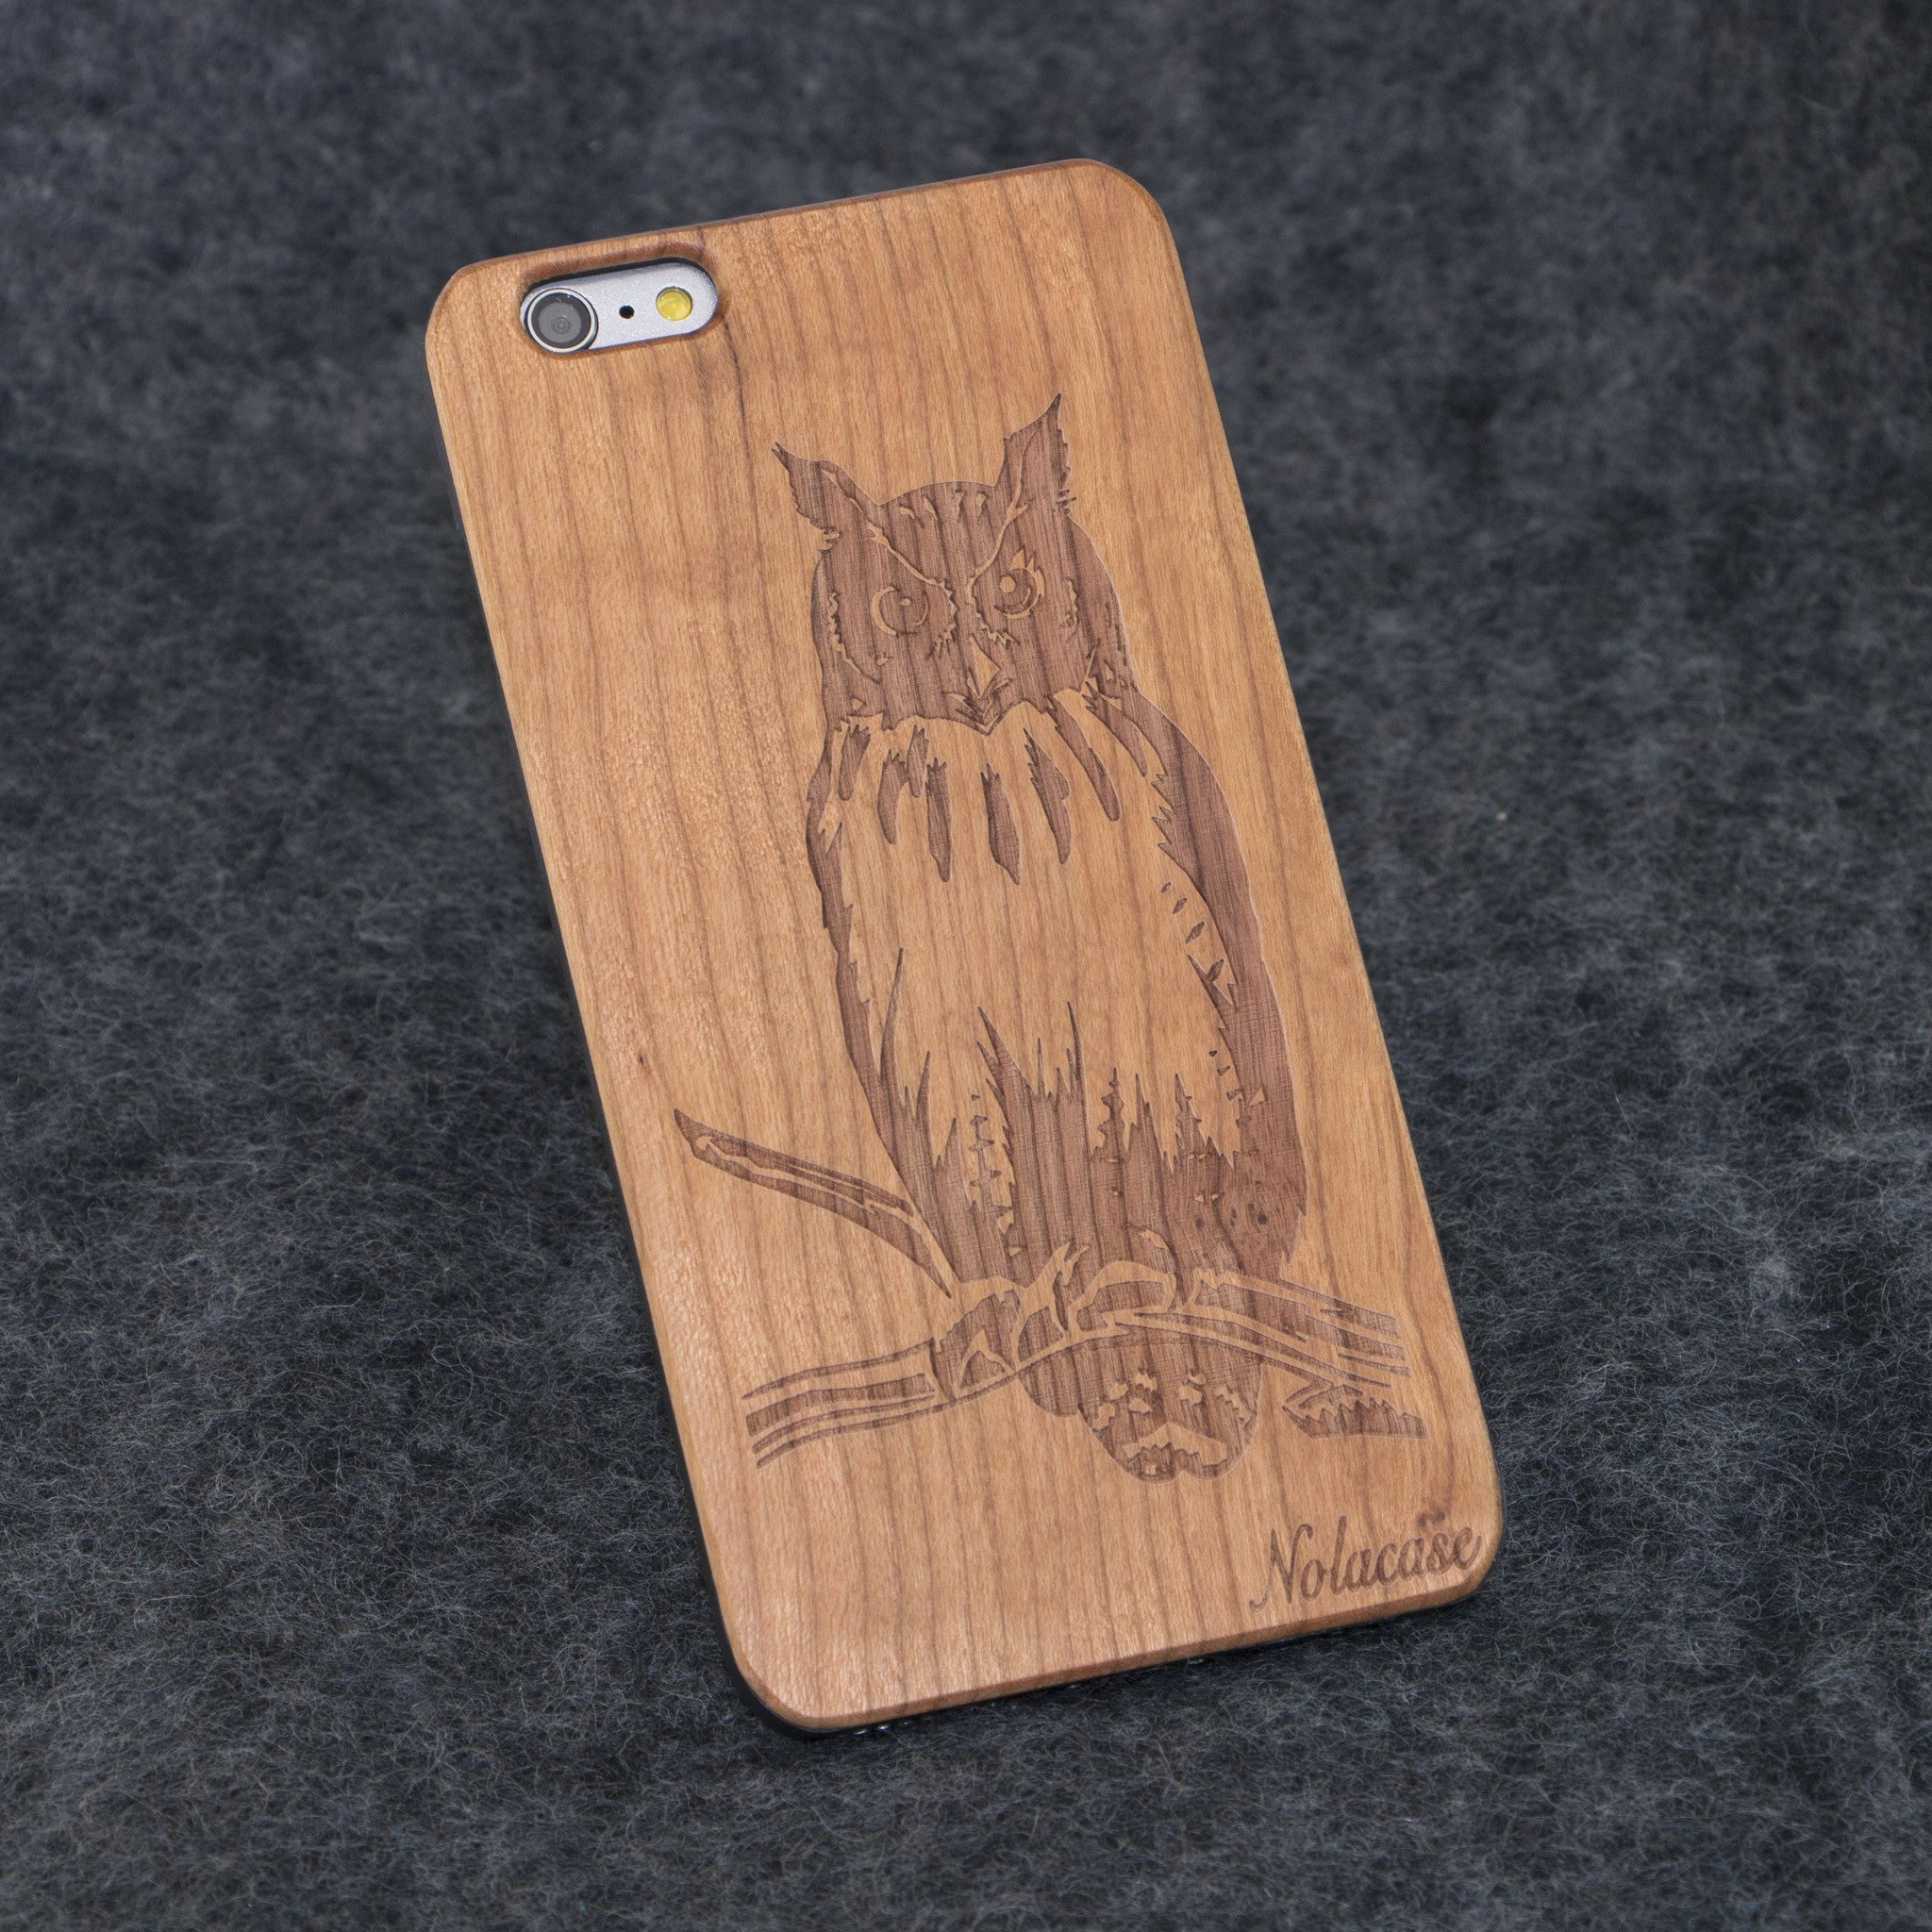 iPhone 6+ Owl Slim Wood Case - NOLACASE - 1